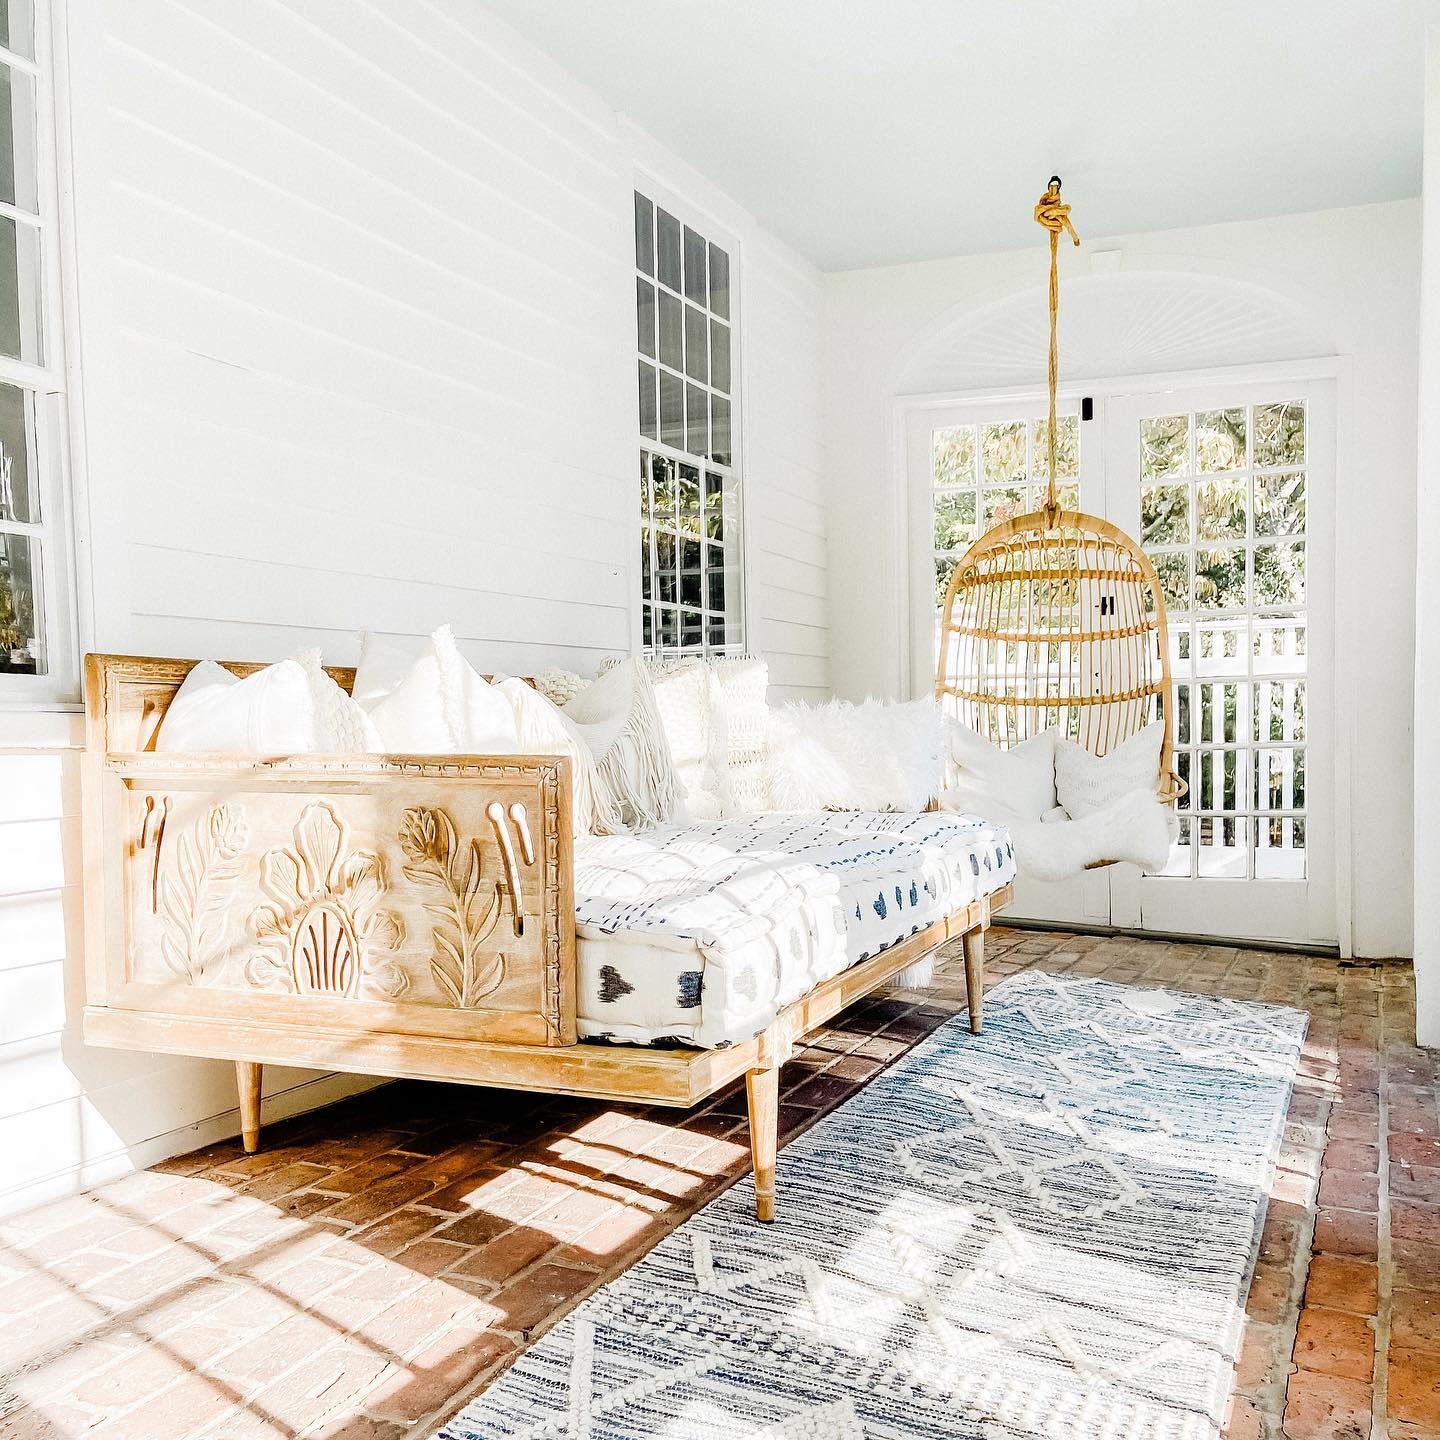 Wood Daybed Ideas -smithandscout